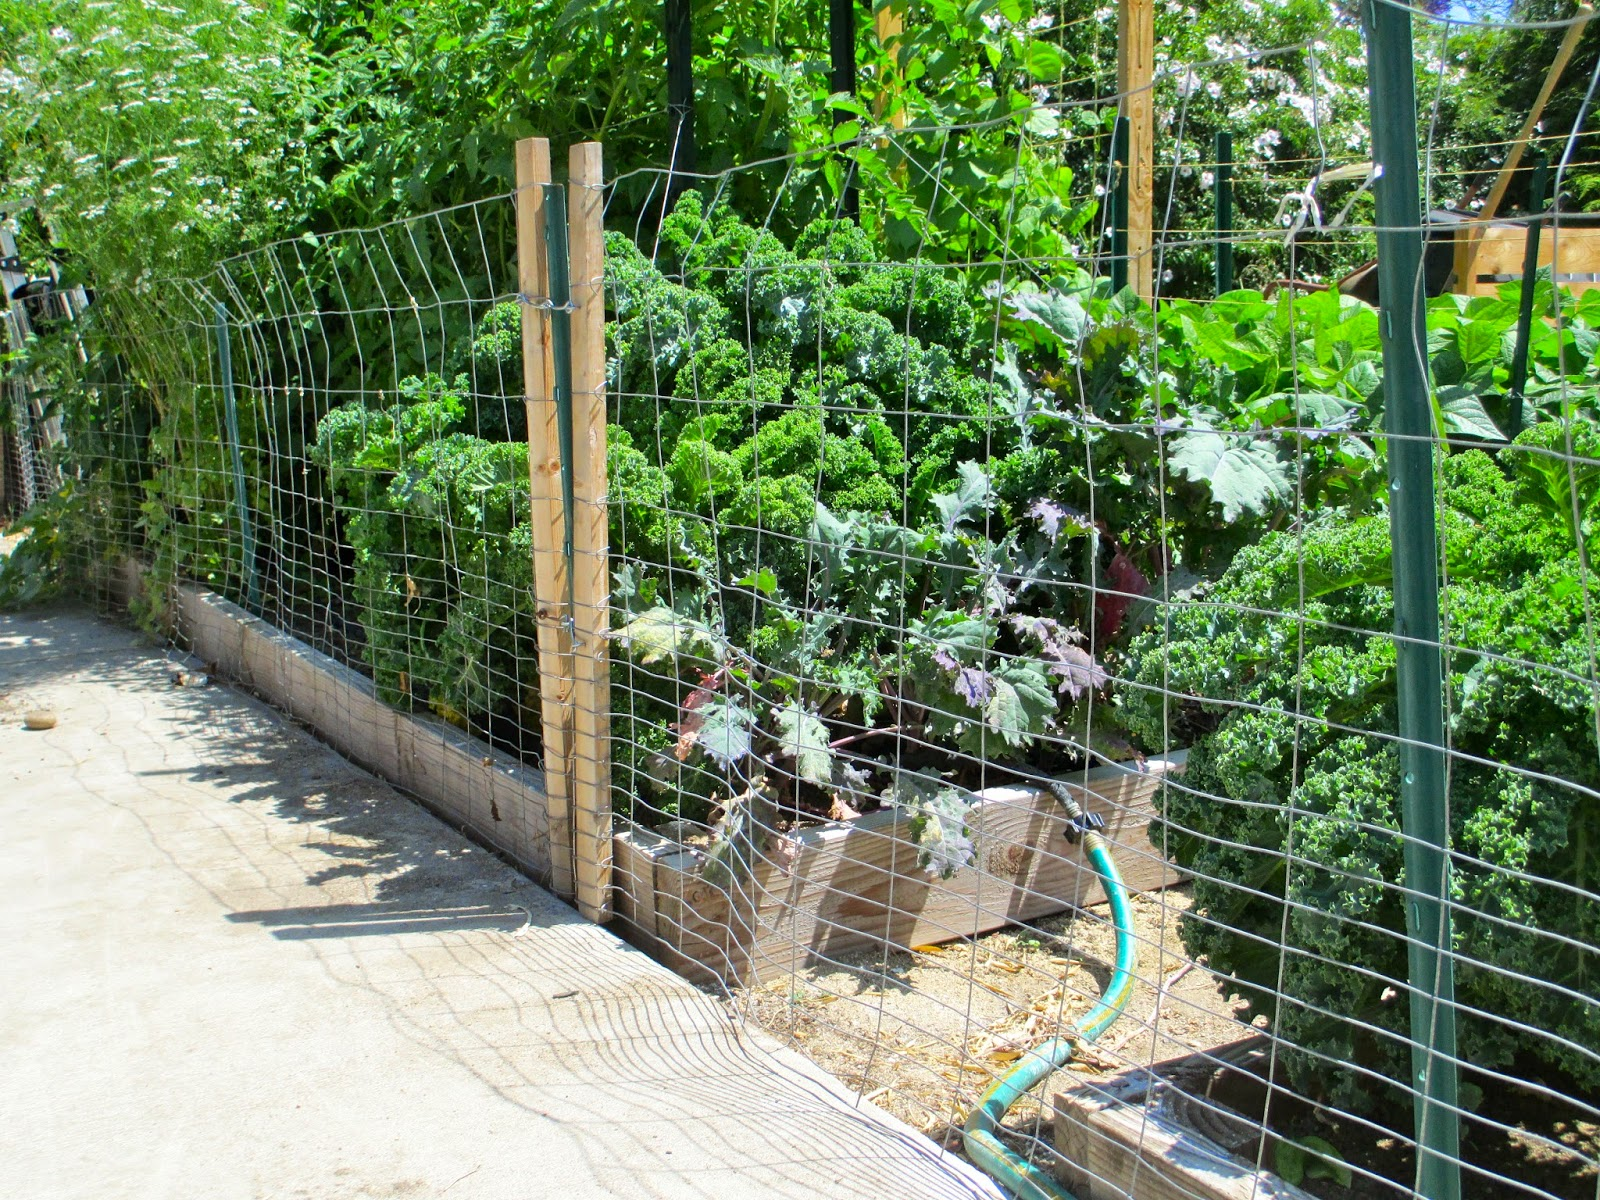 Andies Way Fence and Simple Gates Removes Easily for Gardening